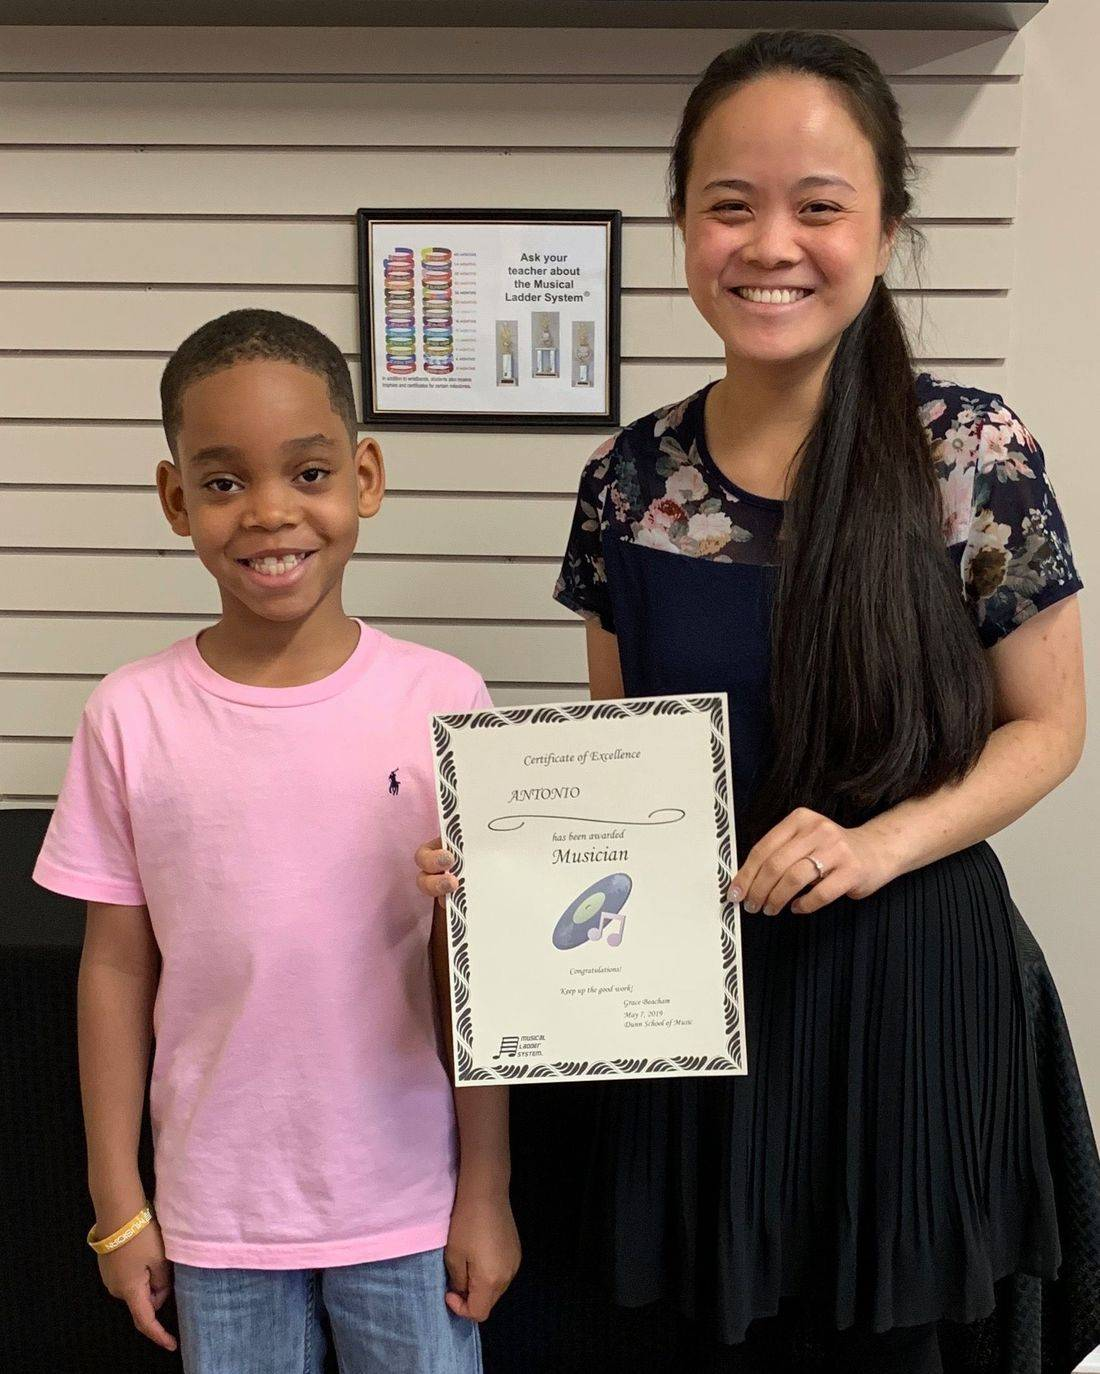 piano lessons, piano student, piano, piano teacher, piano instructor, dunn school of music, dunn nc, dunn, music, music lessons, music school, erwin, buies creek, coats, benson, angier, lillington, newton grove, falcon, clinton, Godwin, eastover, smithfield, Clayton